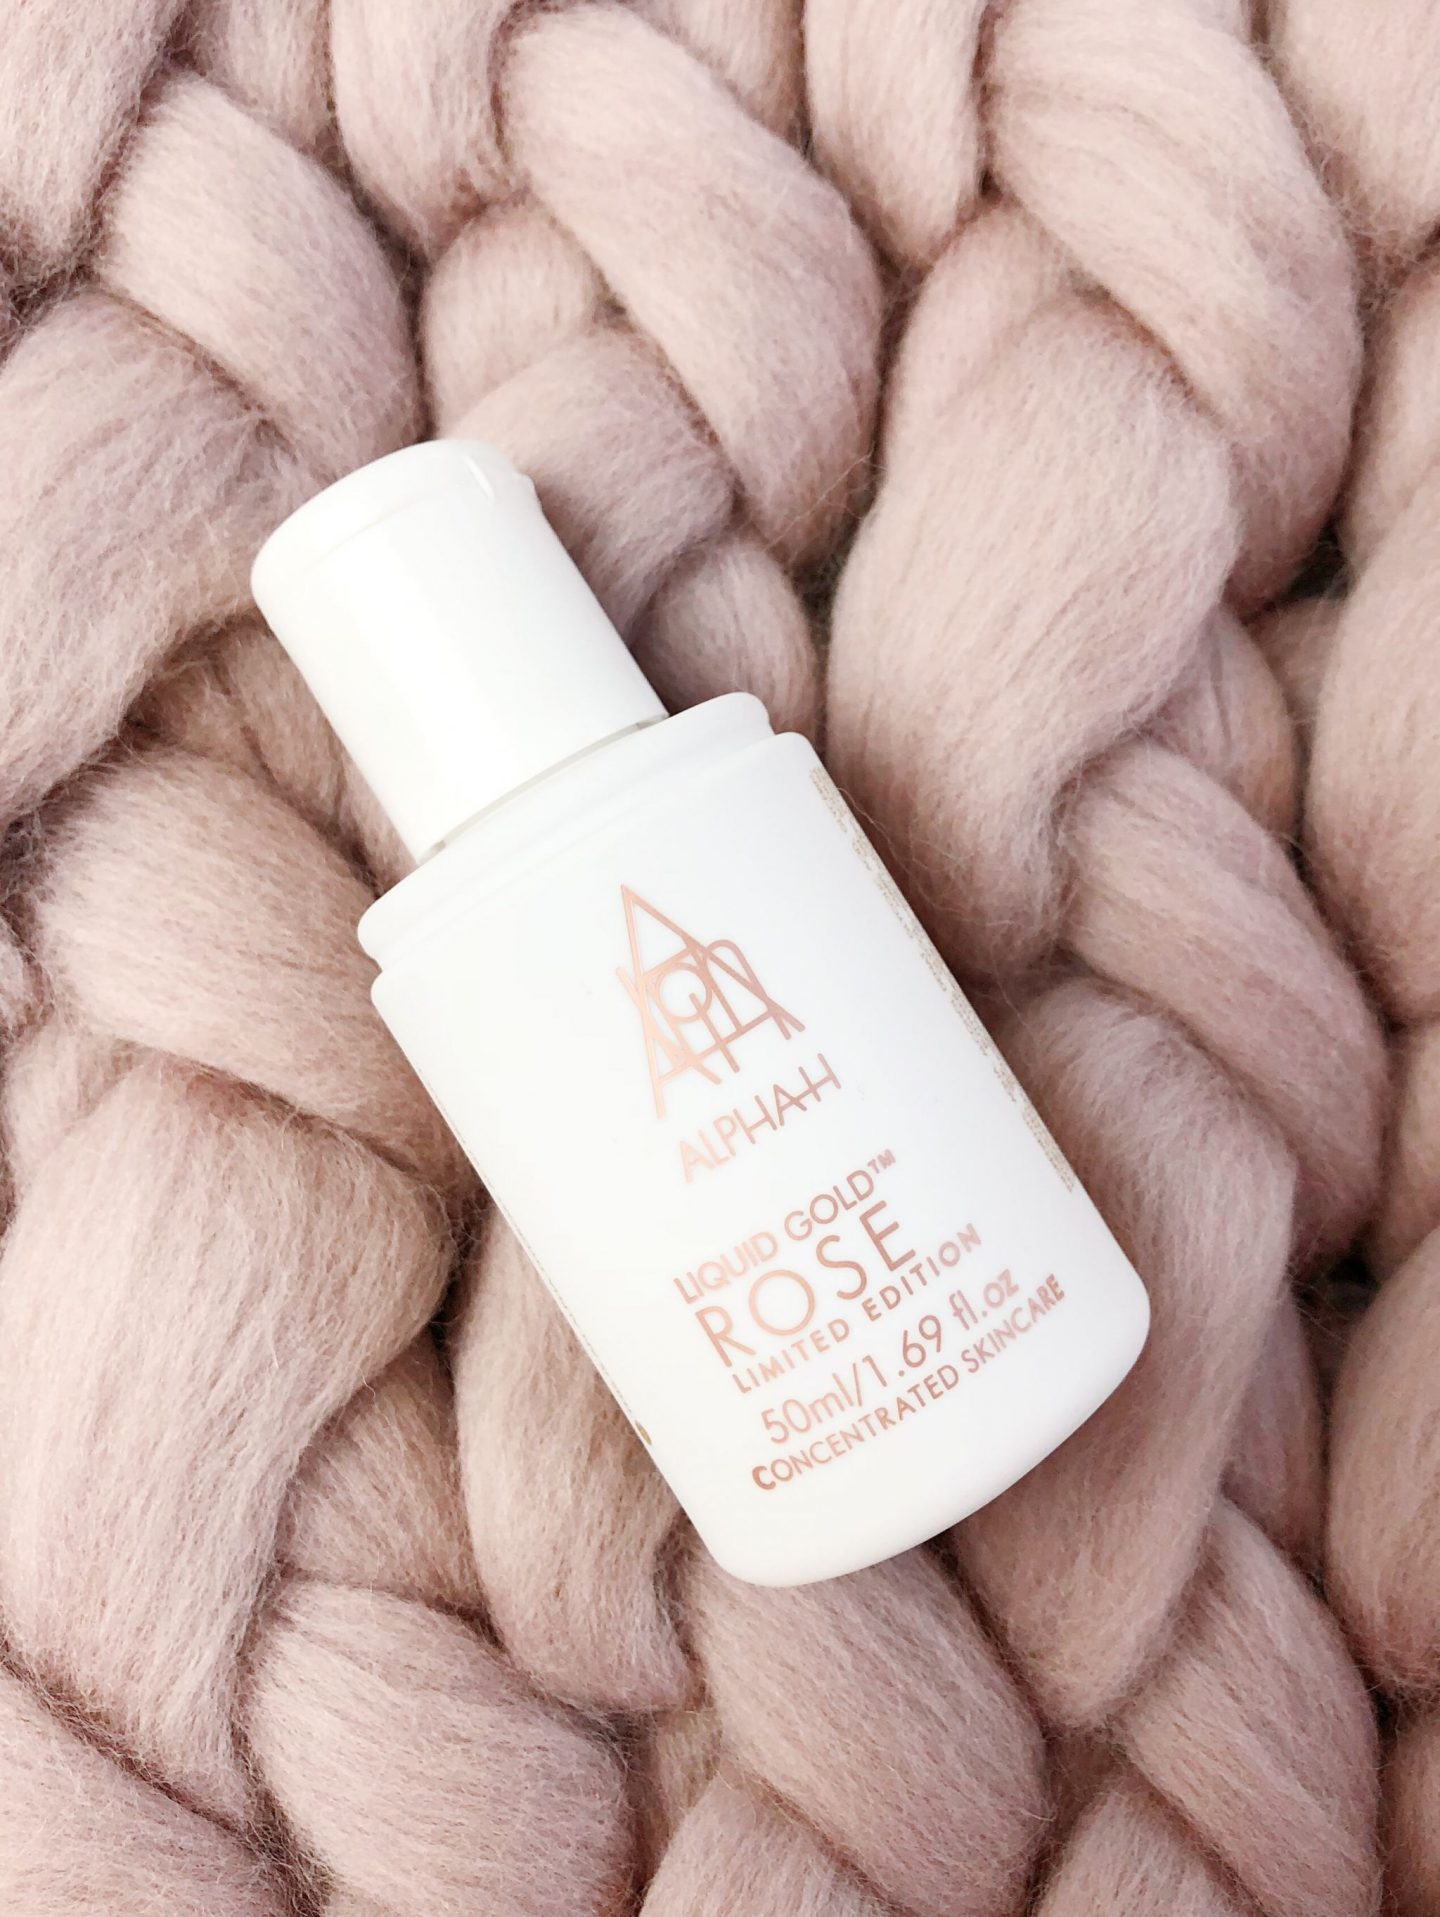 alpha h liquid rose gold skincare review